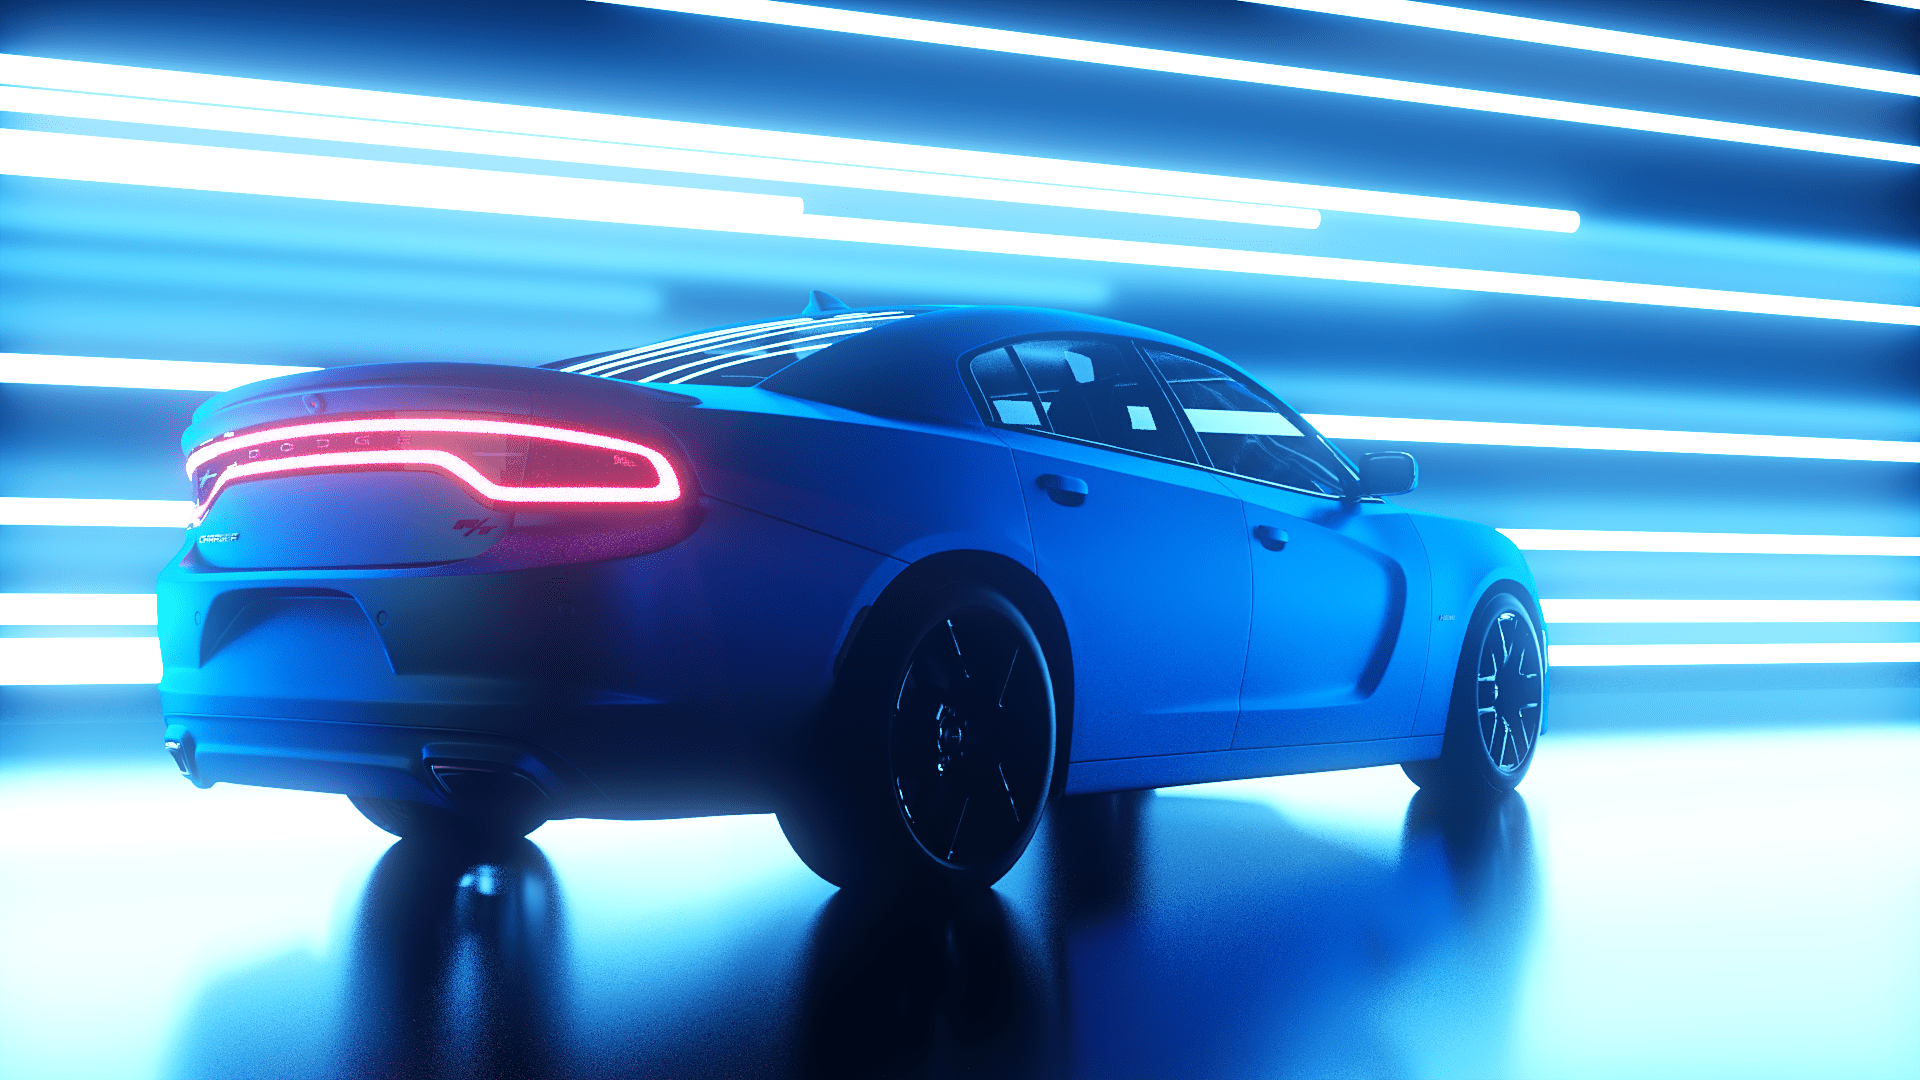 DODGE_CHARGER_OCTANE_RENDER_03